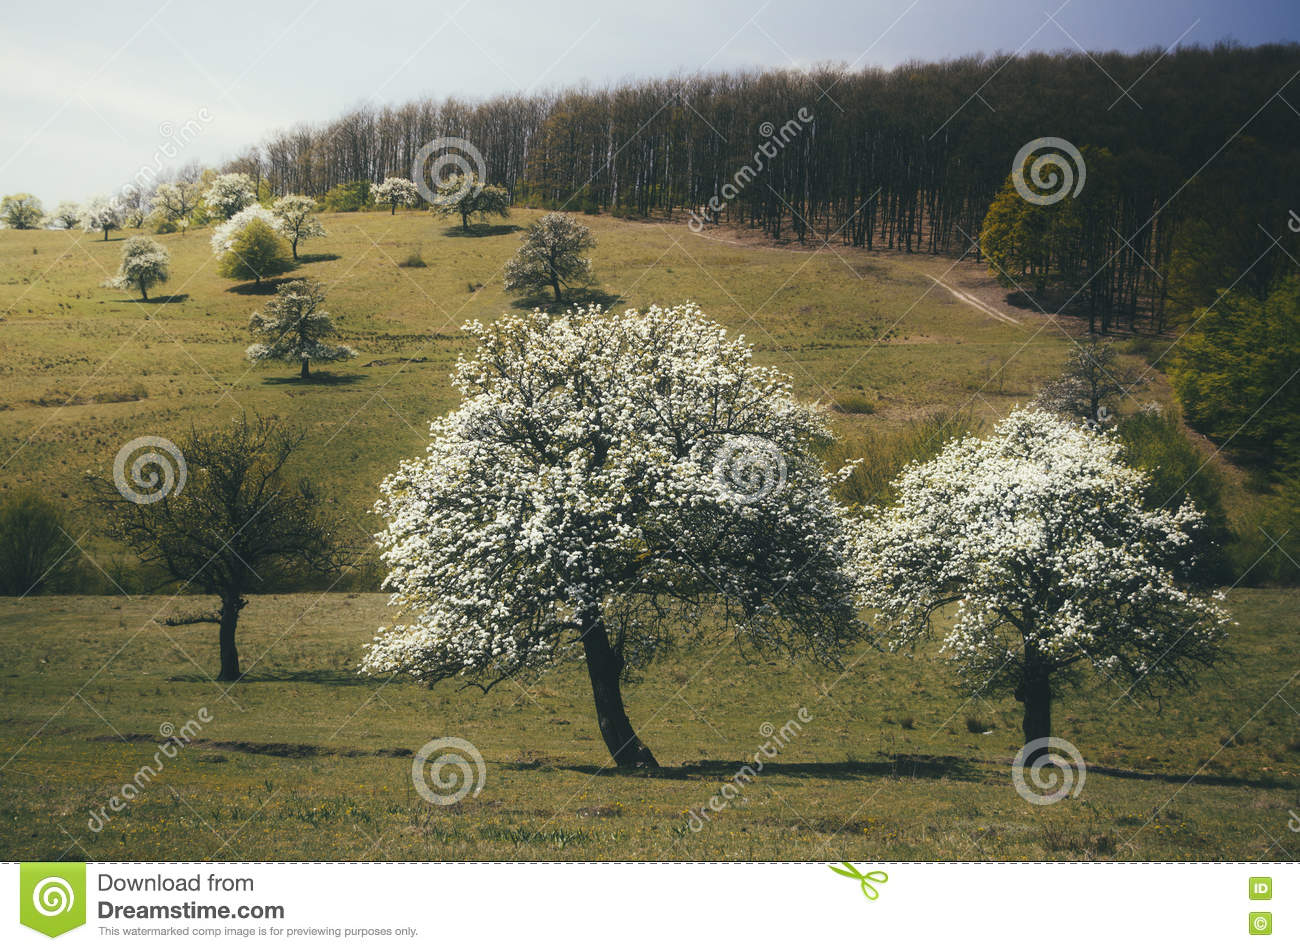 Trees in bloom with white flowers in spring